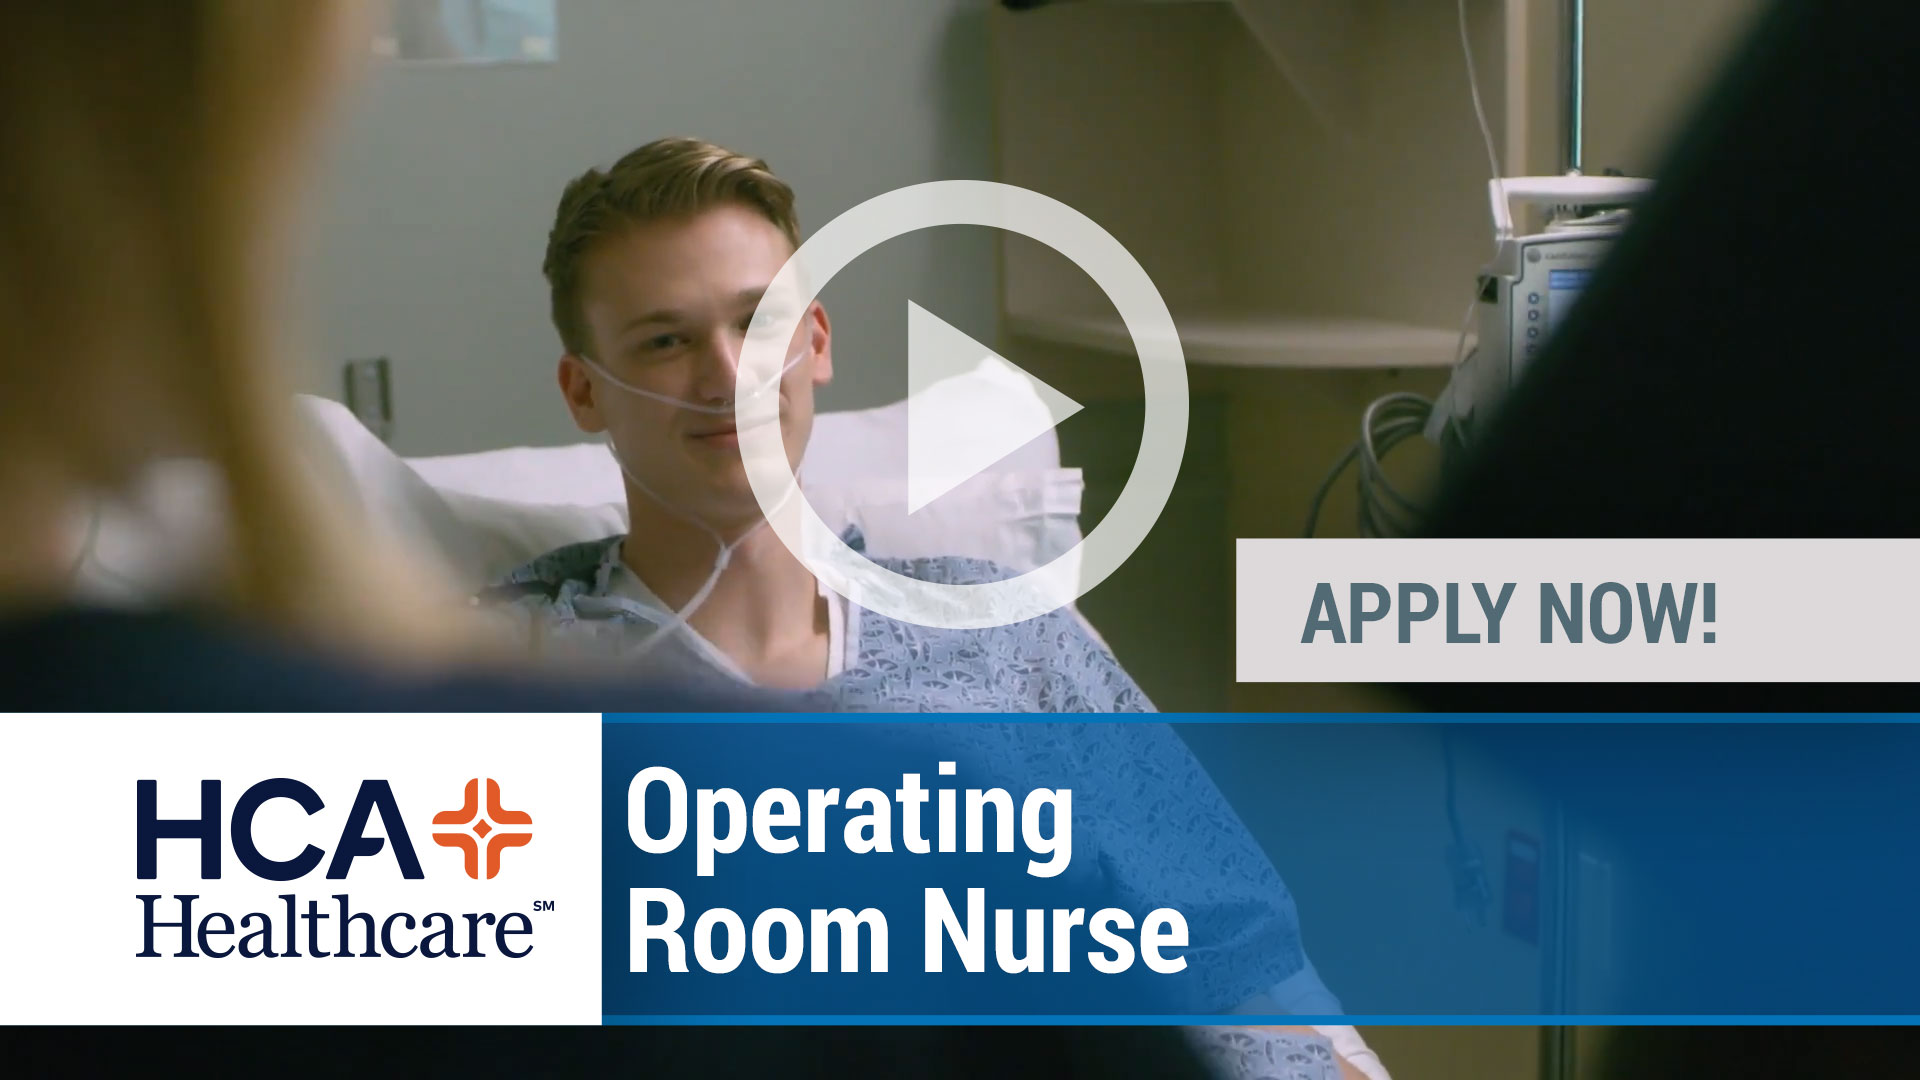 Watch our careers video for available job opening Operating Room Nurse in Cottonwood Heights, Utah